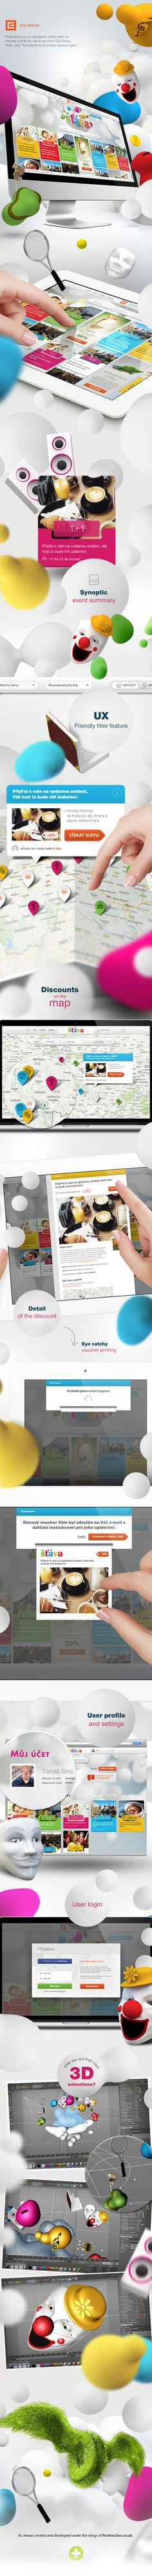 Great deals and discounts portal by CEZ by PositiveZero.co.uk , via Behance